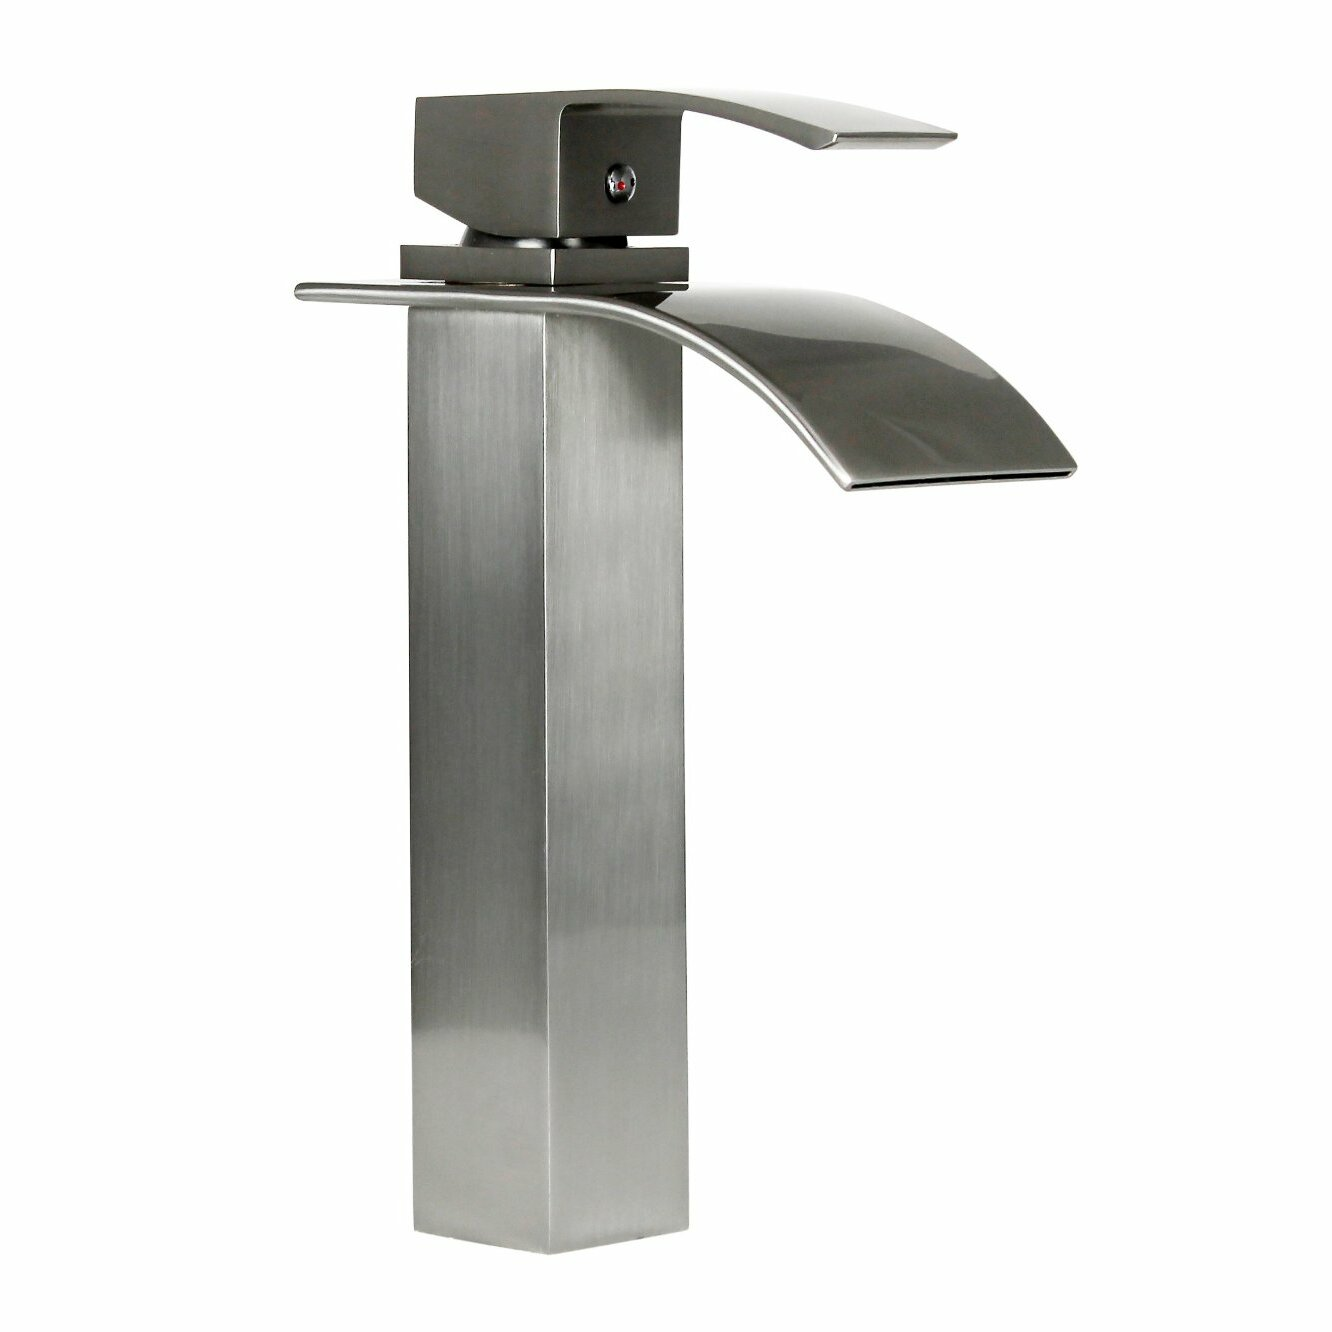 Dyconn Faucet Wye Modern Bathroom Vessel Sink Faucet & Reviews